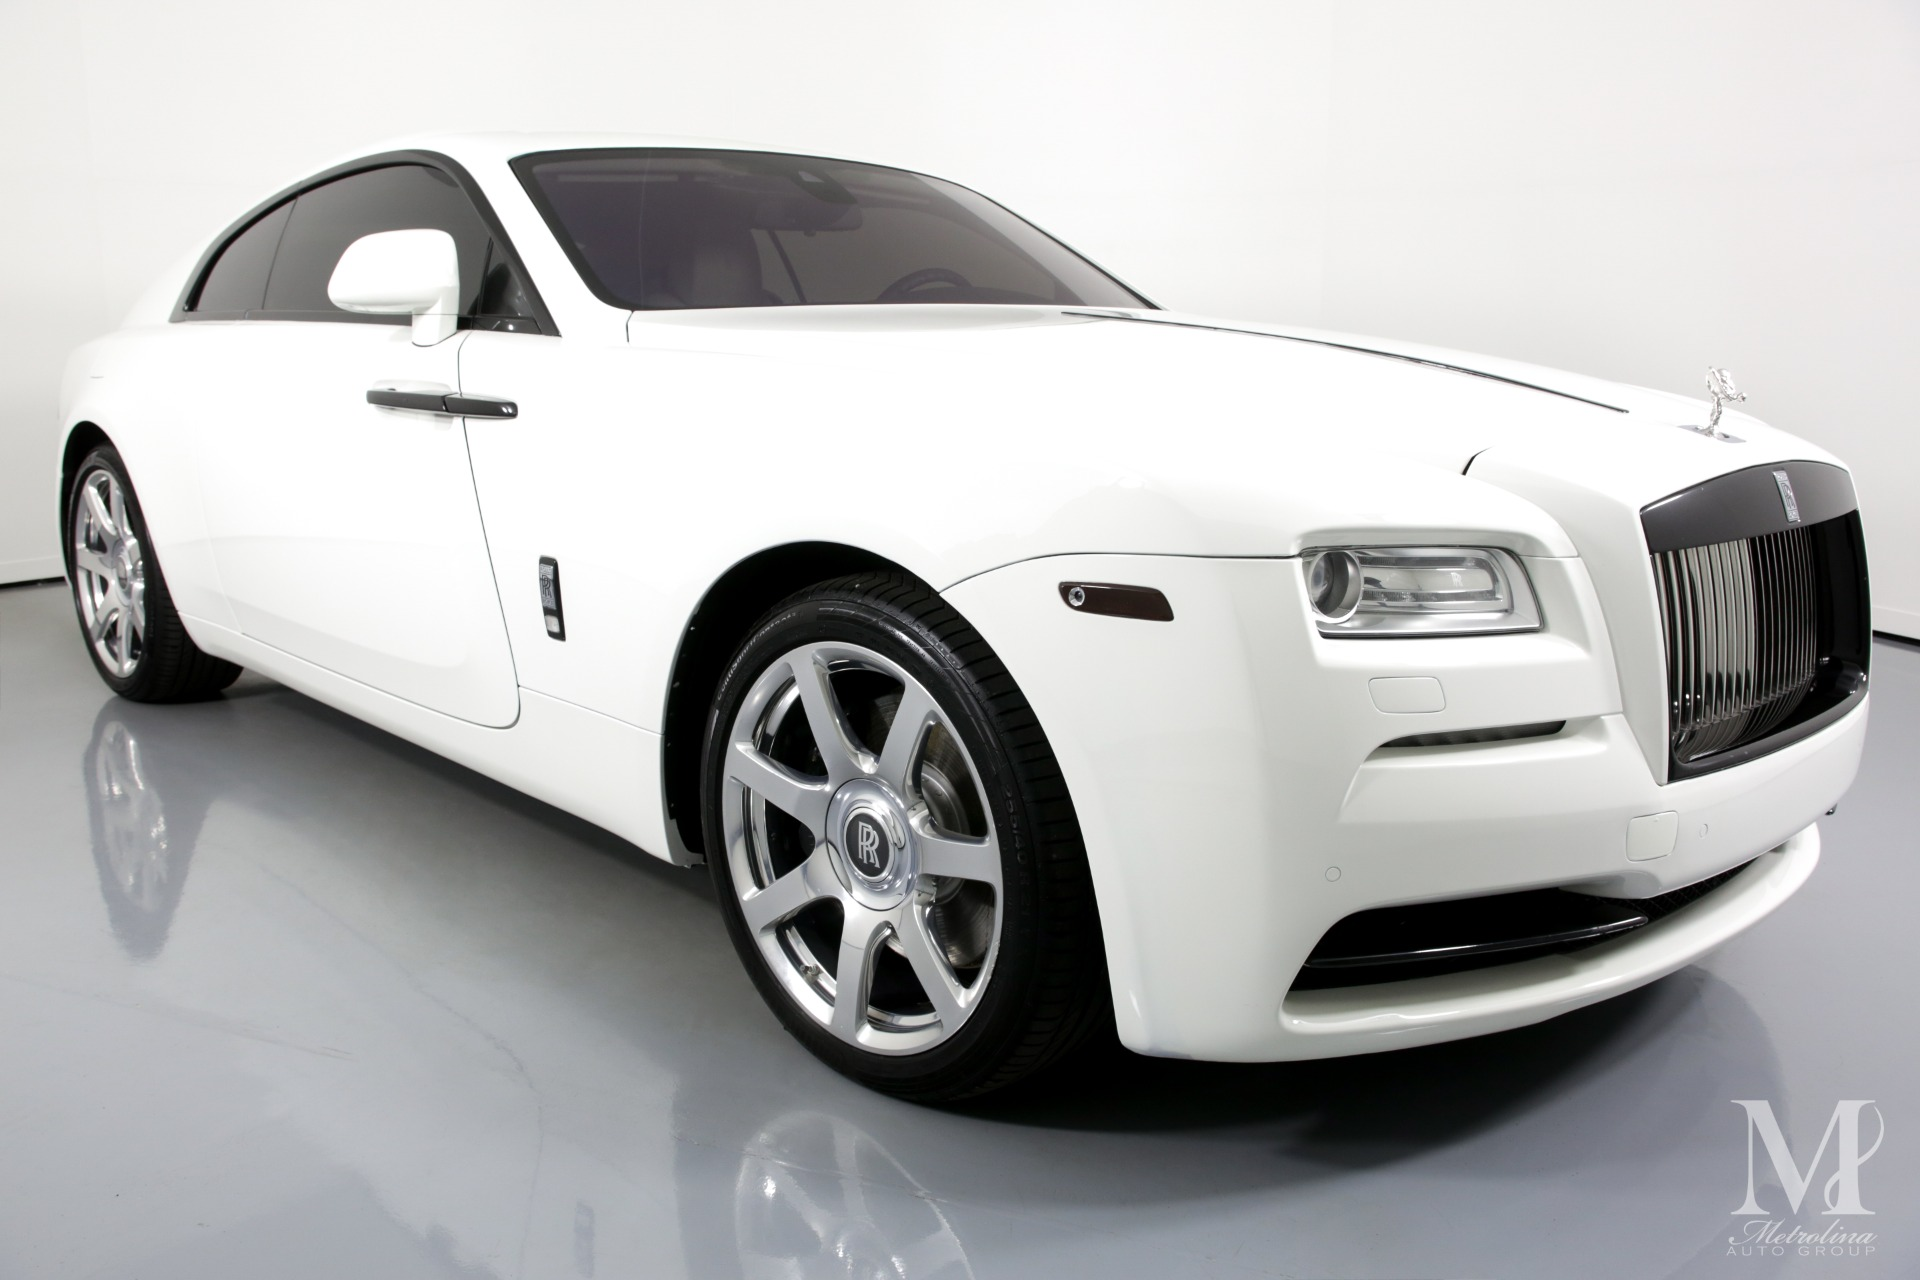 Used 2014 Rolls-Royce Wraith Base 2dr Coupe for sale $153,996 at Metrolina Auto Group in Charlotte NC 28217 - 2